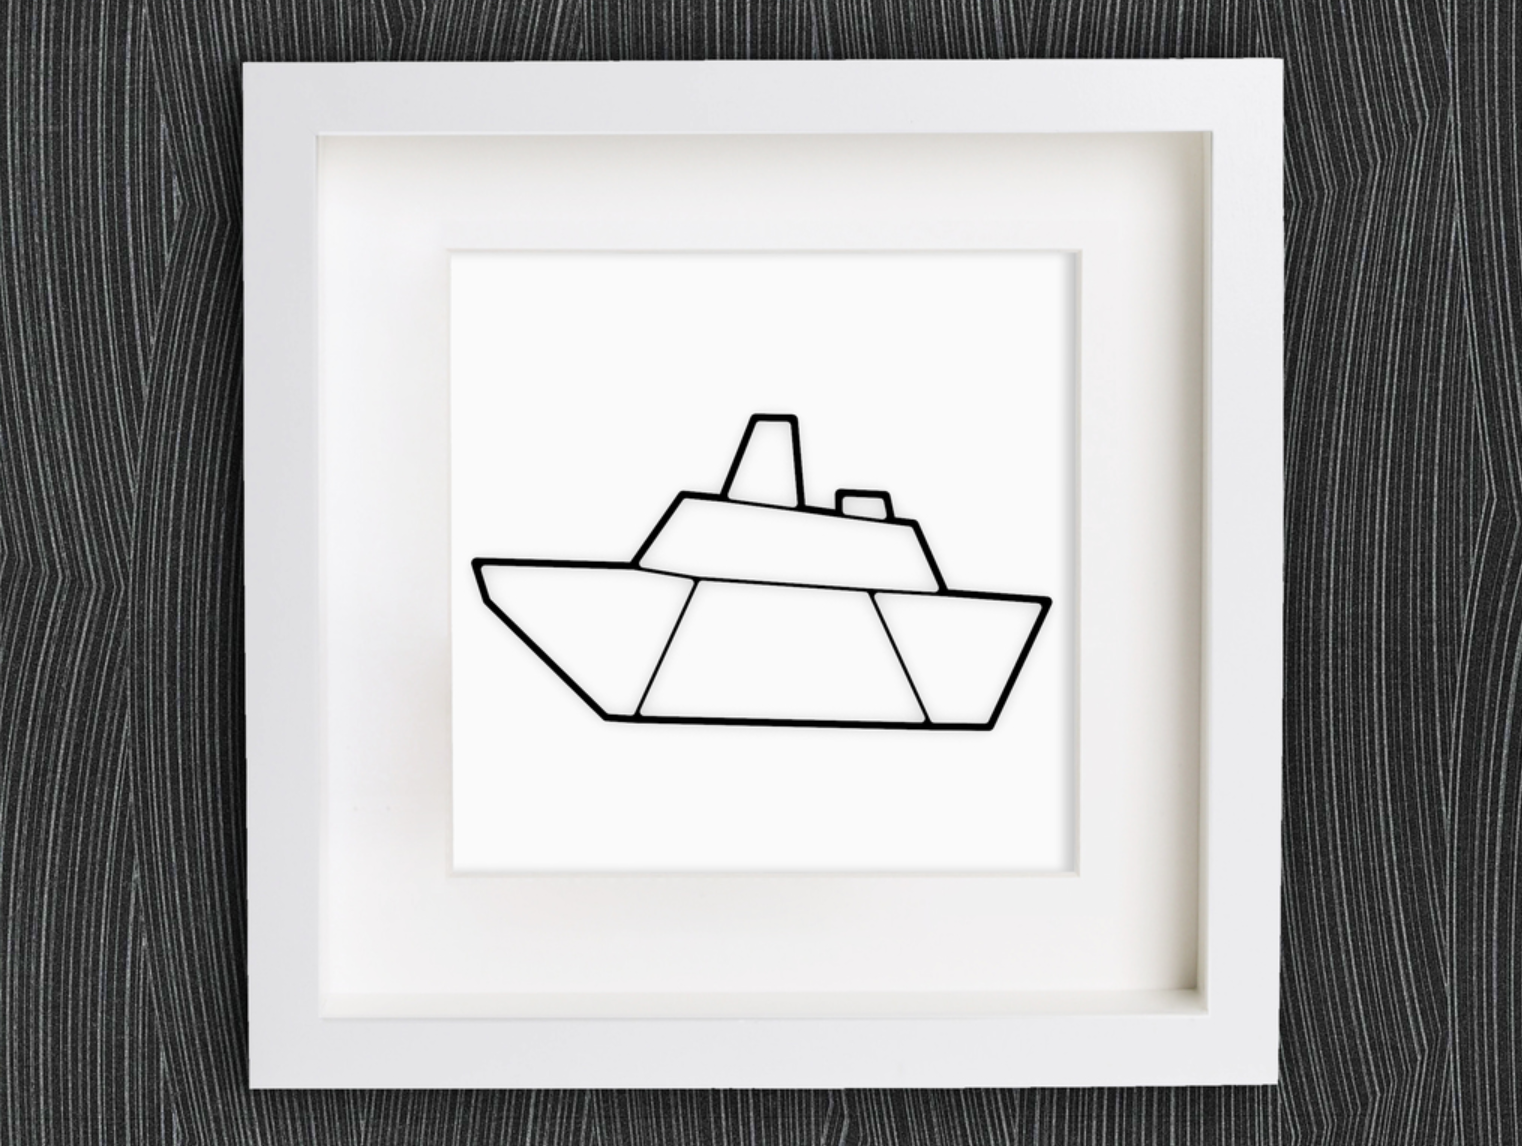 Capture d'écran 2017-12-26 à 12.17.18.png Download free STL file Customizable Origami Steamboat • 3D print template, MightyNozzle